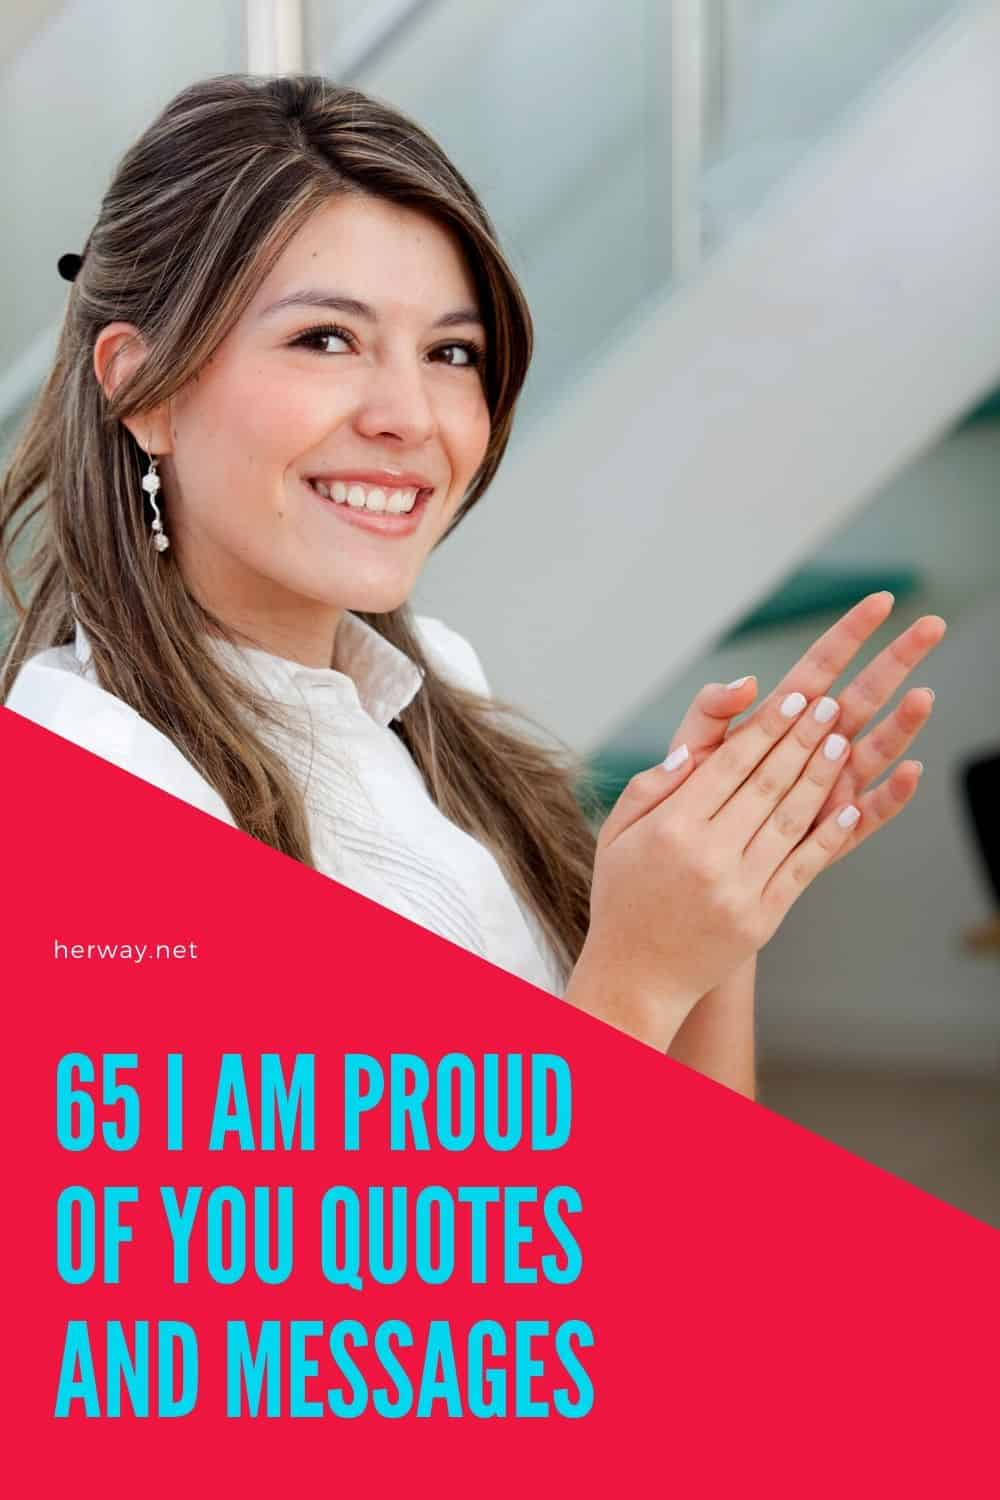 65 I Am Proud Of You Quotes And Messages